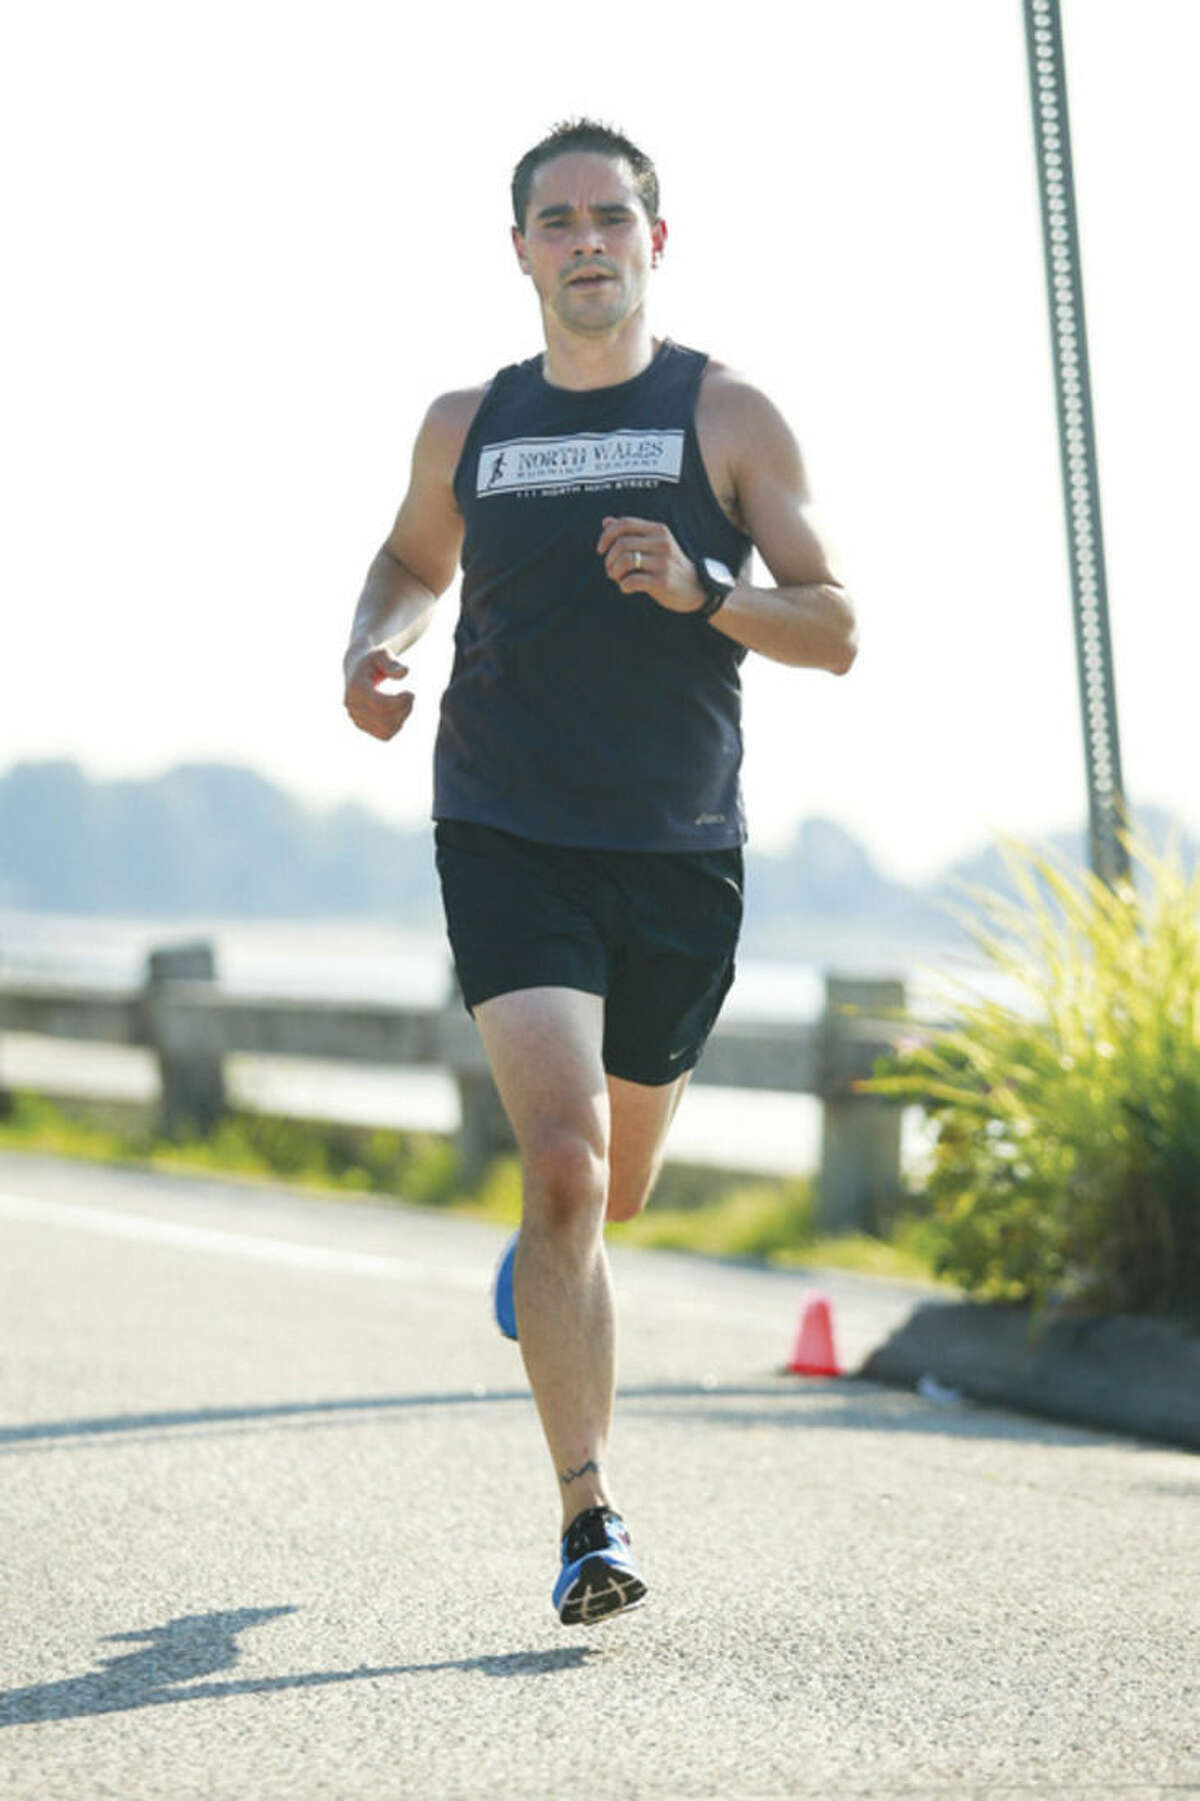 Hour photo/Chris Palermo James Osborne finishes first overall during the Westport Road Runners race Saturday morning at Compo Beach.